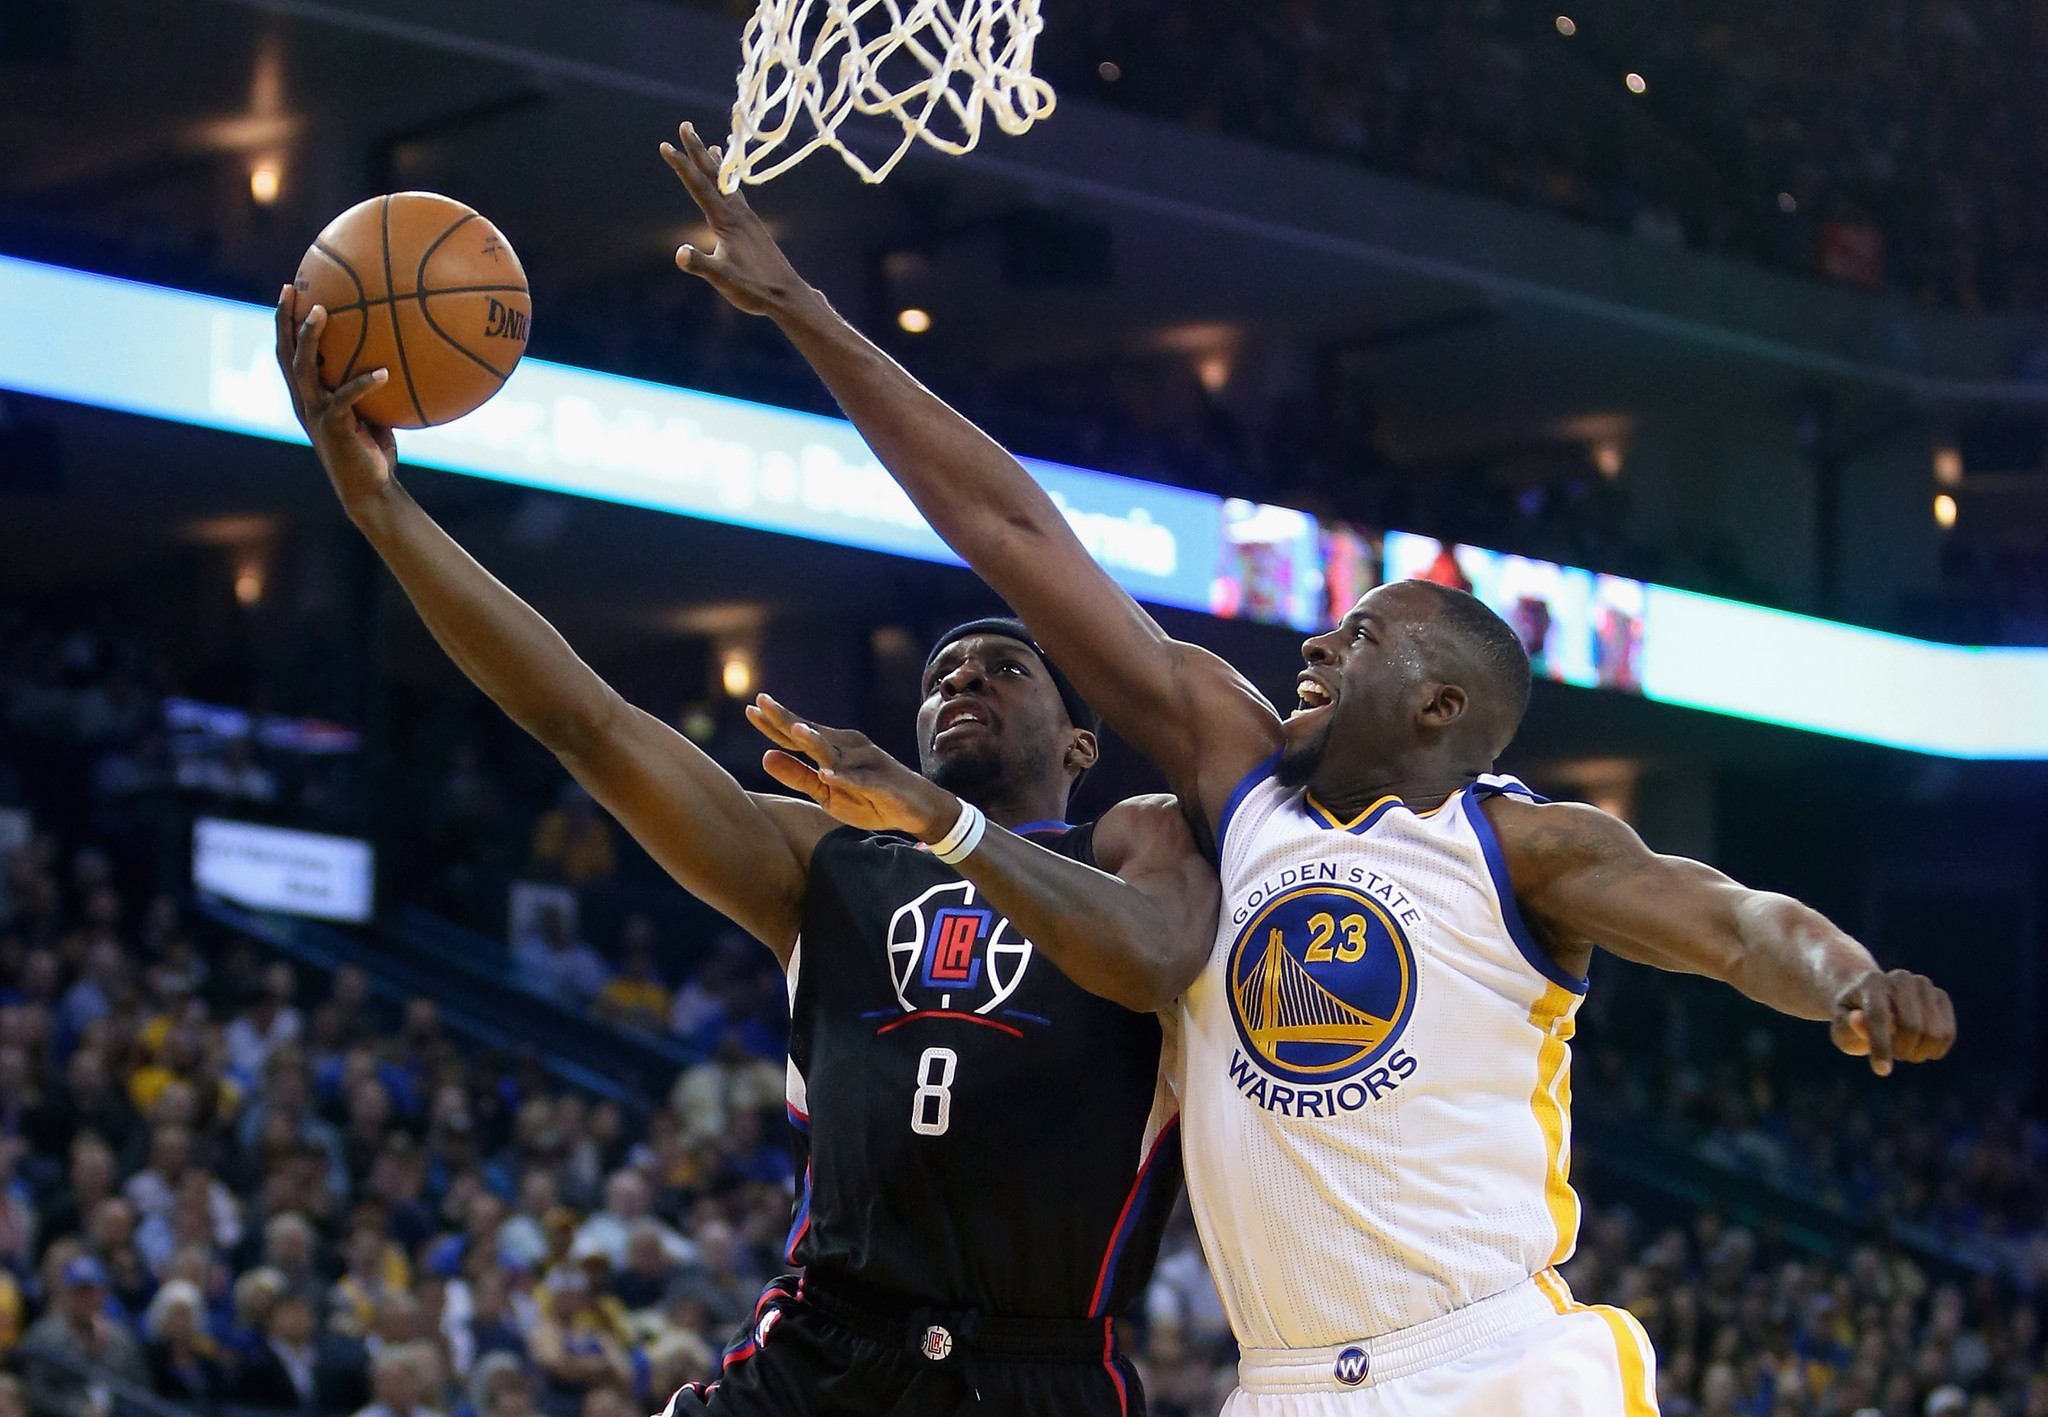 La-sp-clippers-report-20160430